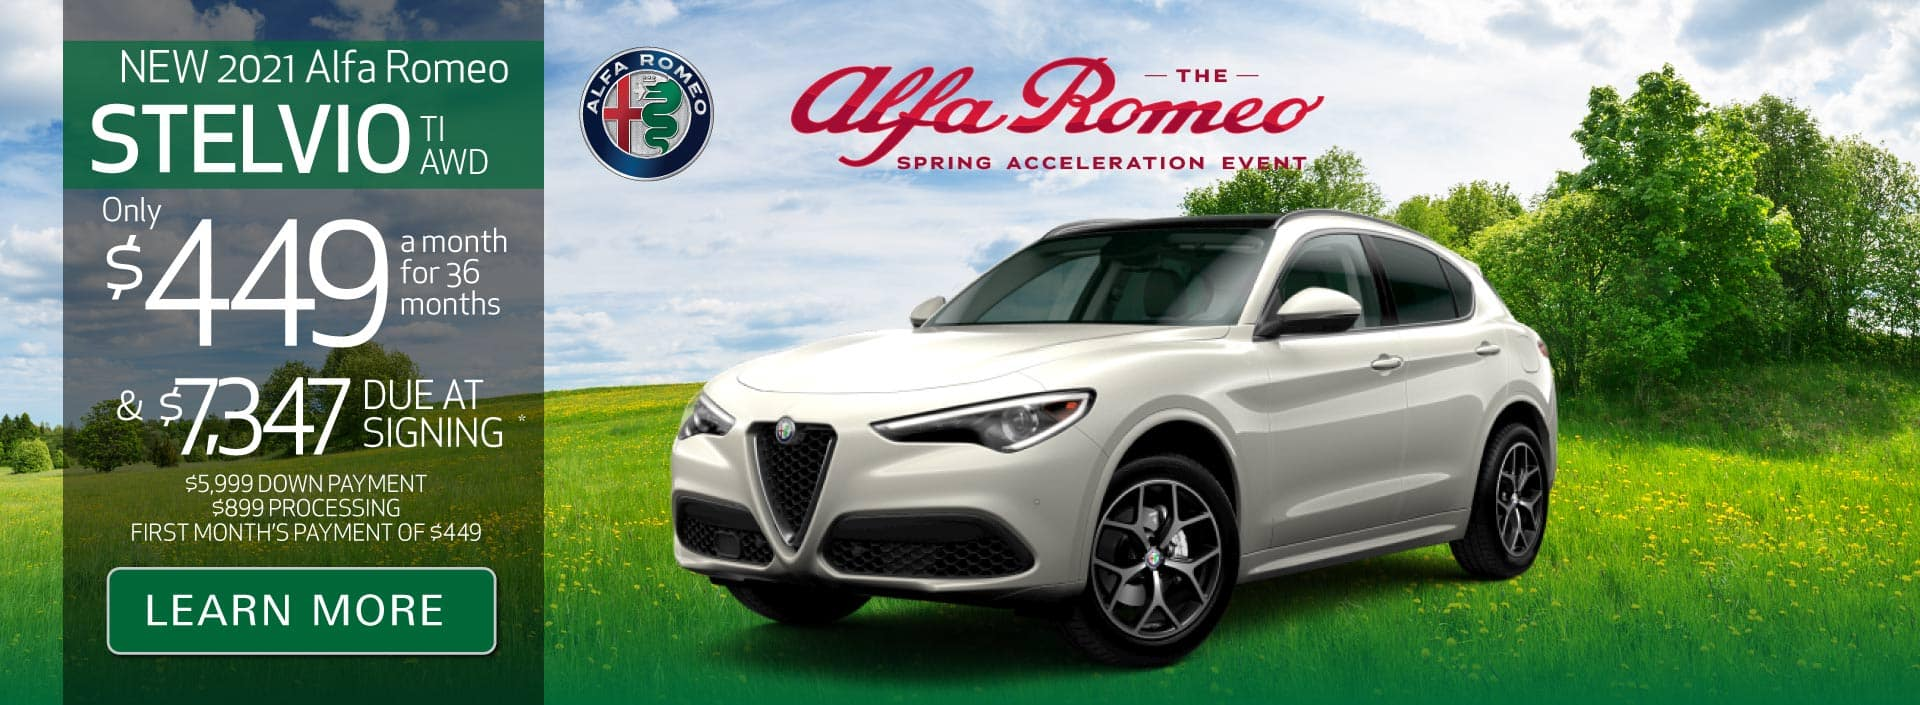 New 2021 Stelvio TI AWD Only $449 a month for 36 months | Learn More